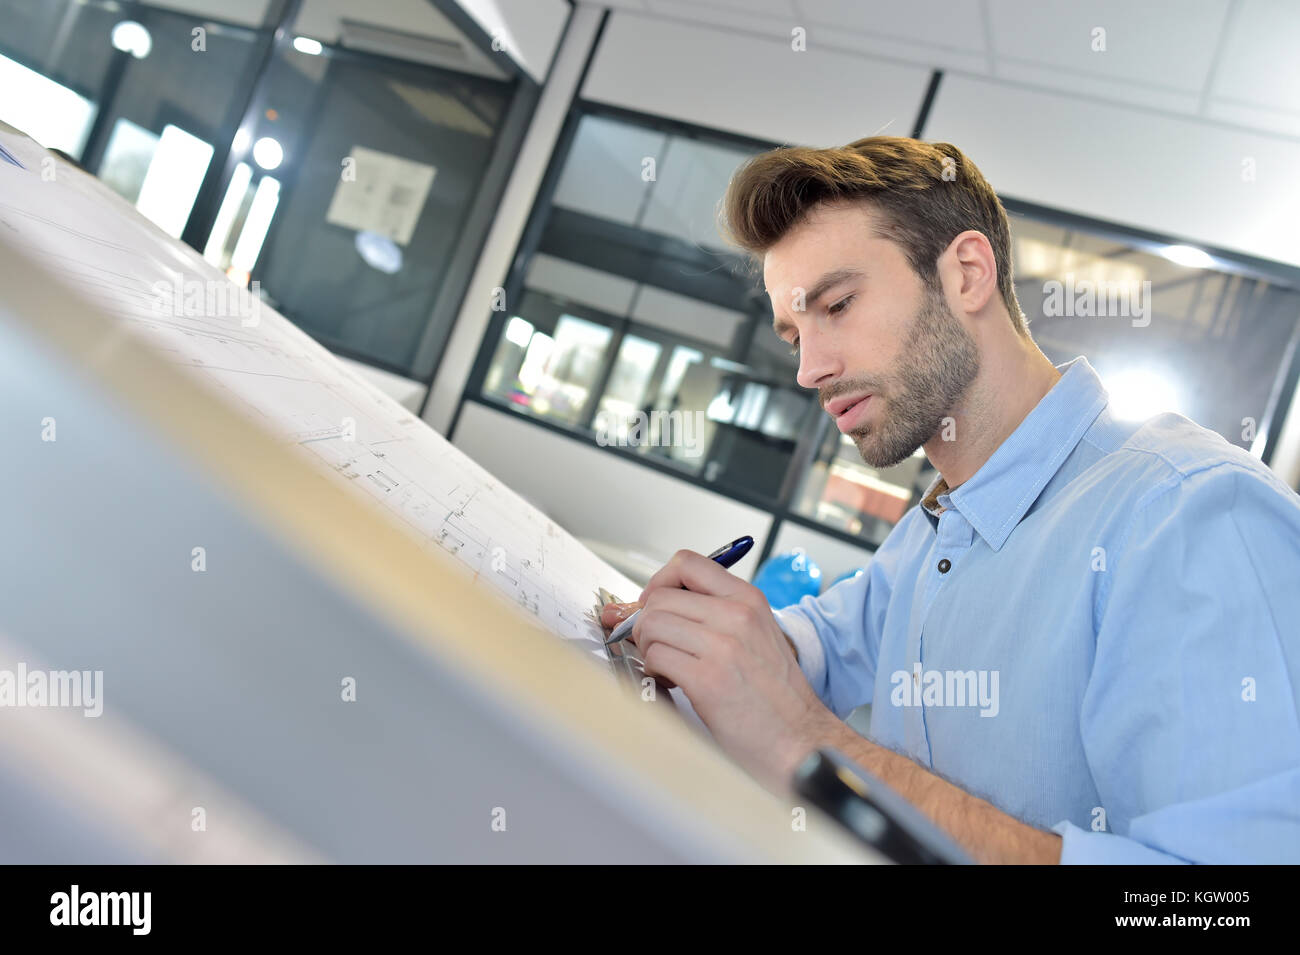 Architect designing on drafting table - Stock Image